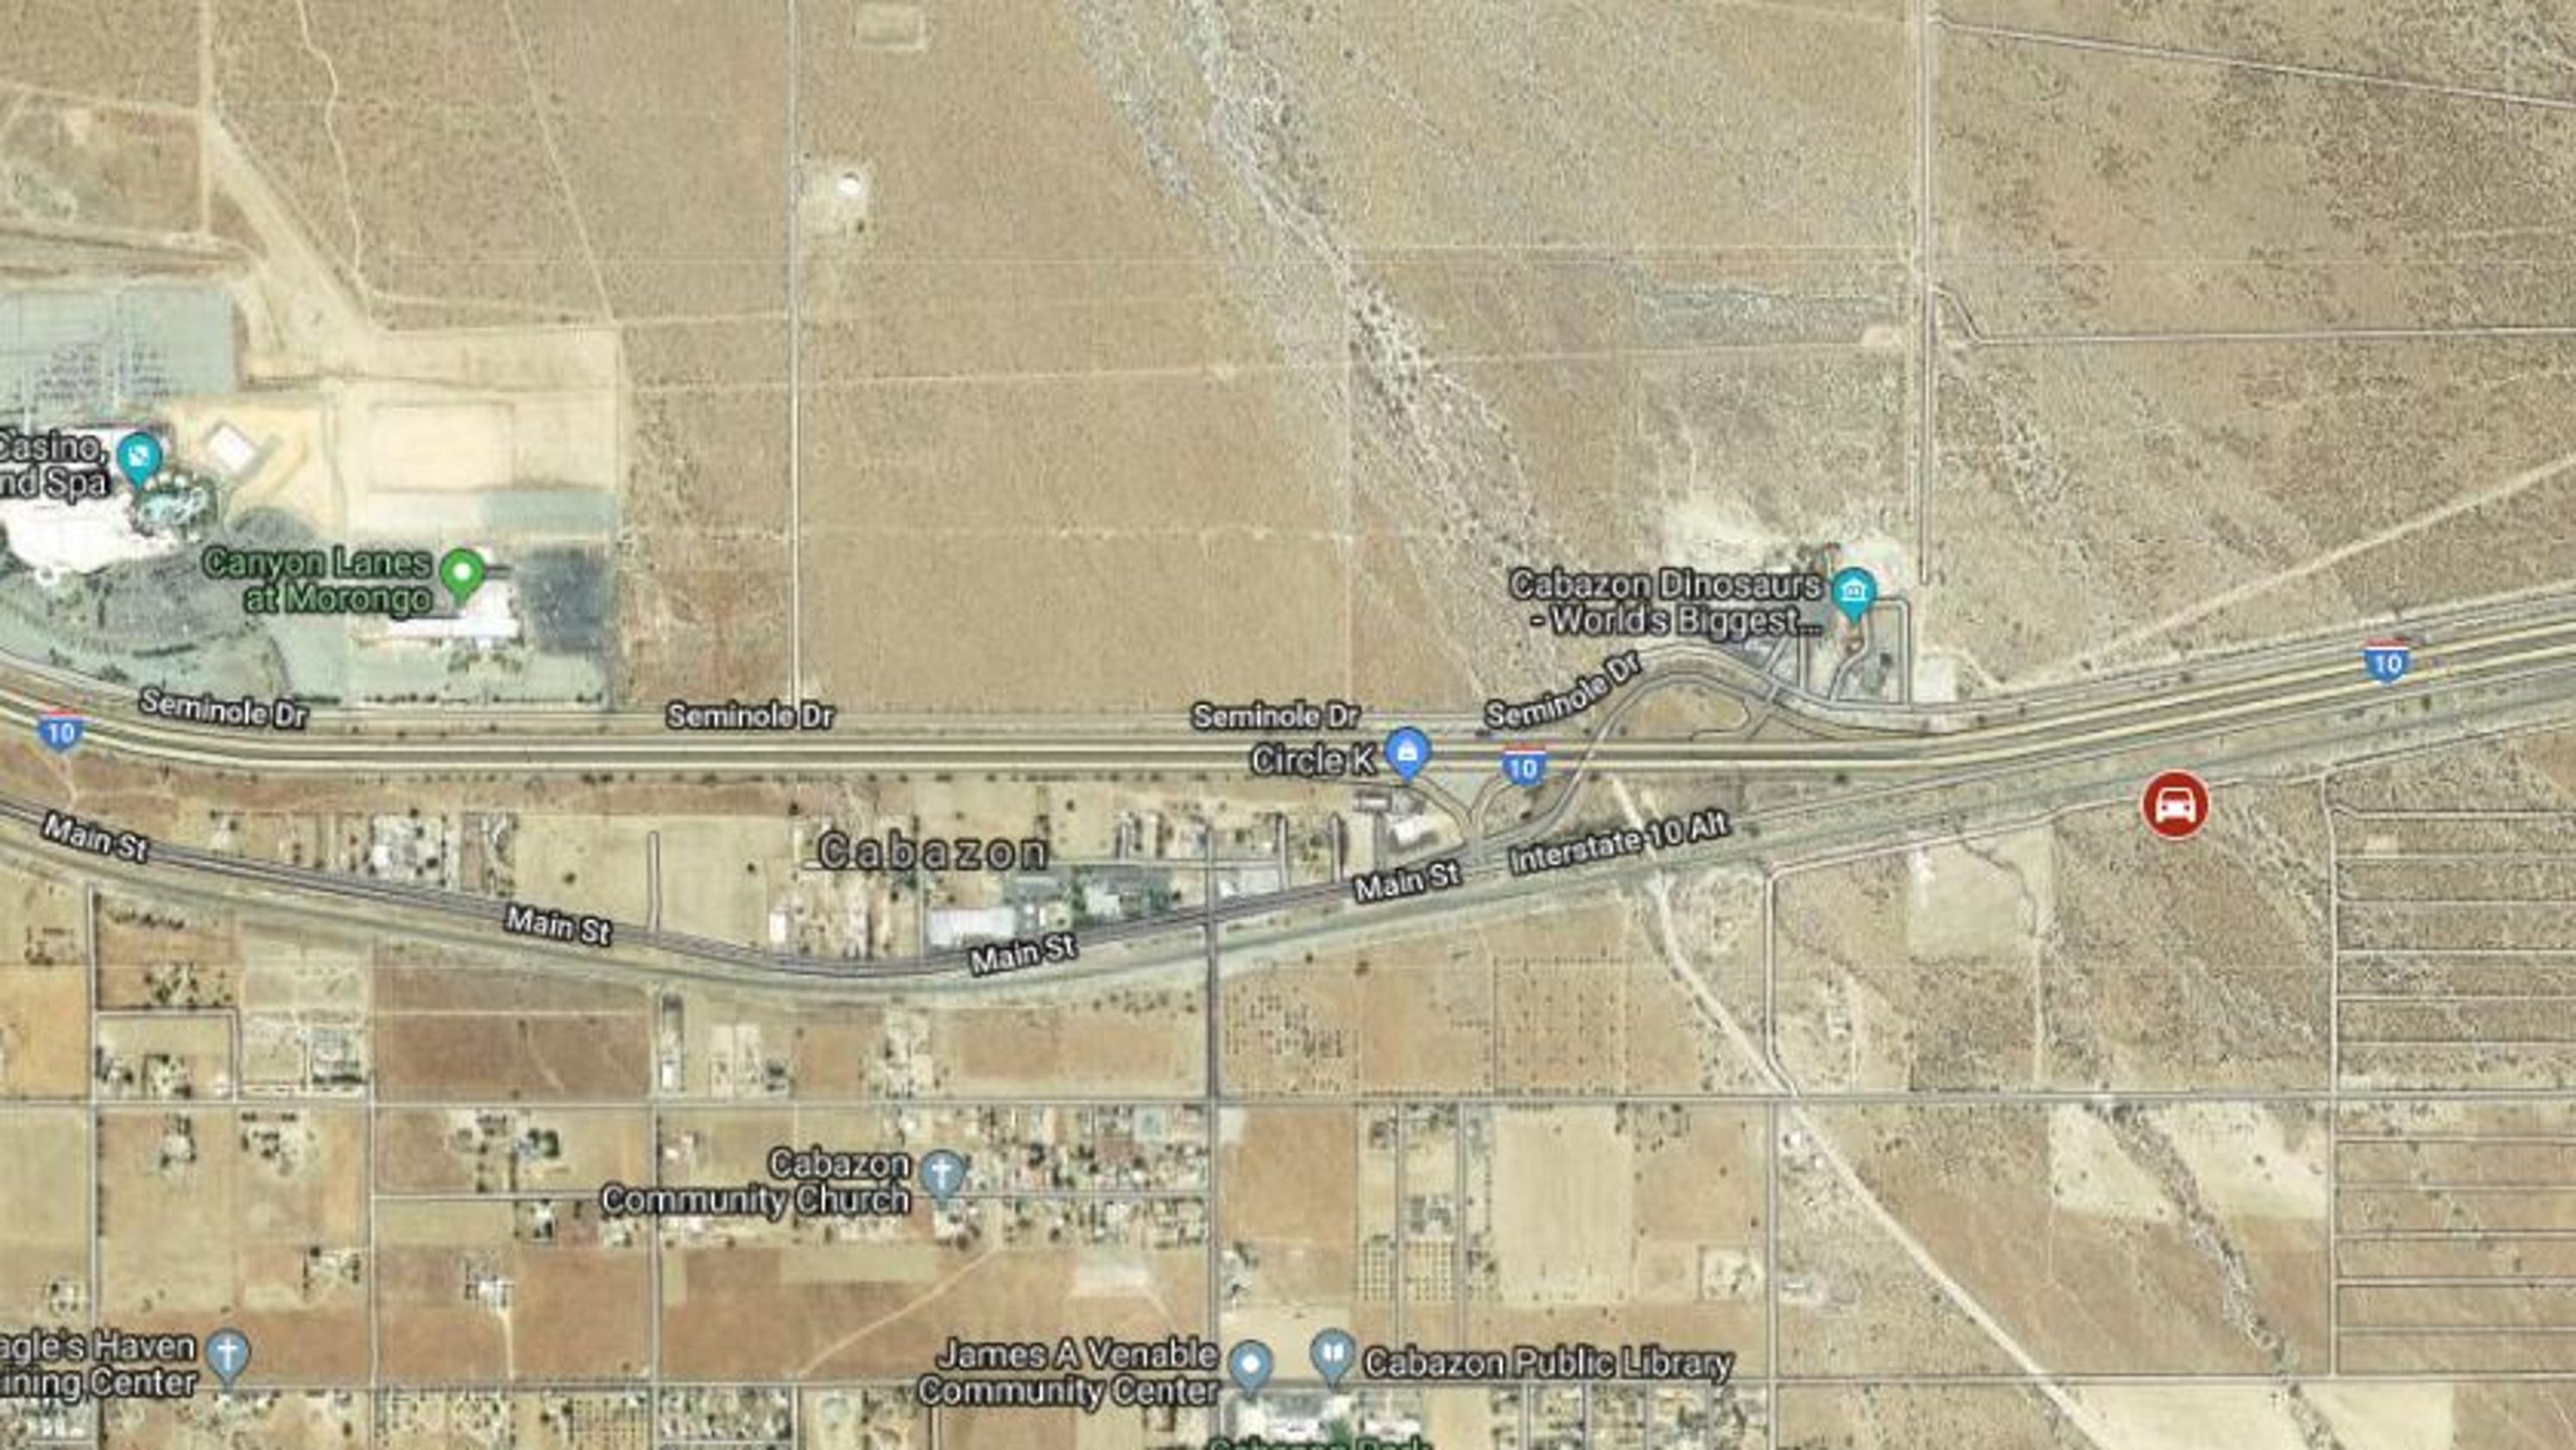 Albuquerque man killed in I-10 collision in Cabazon was